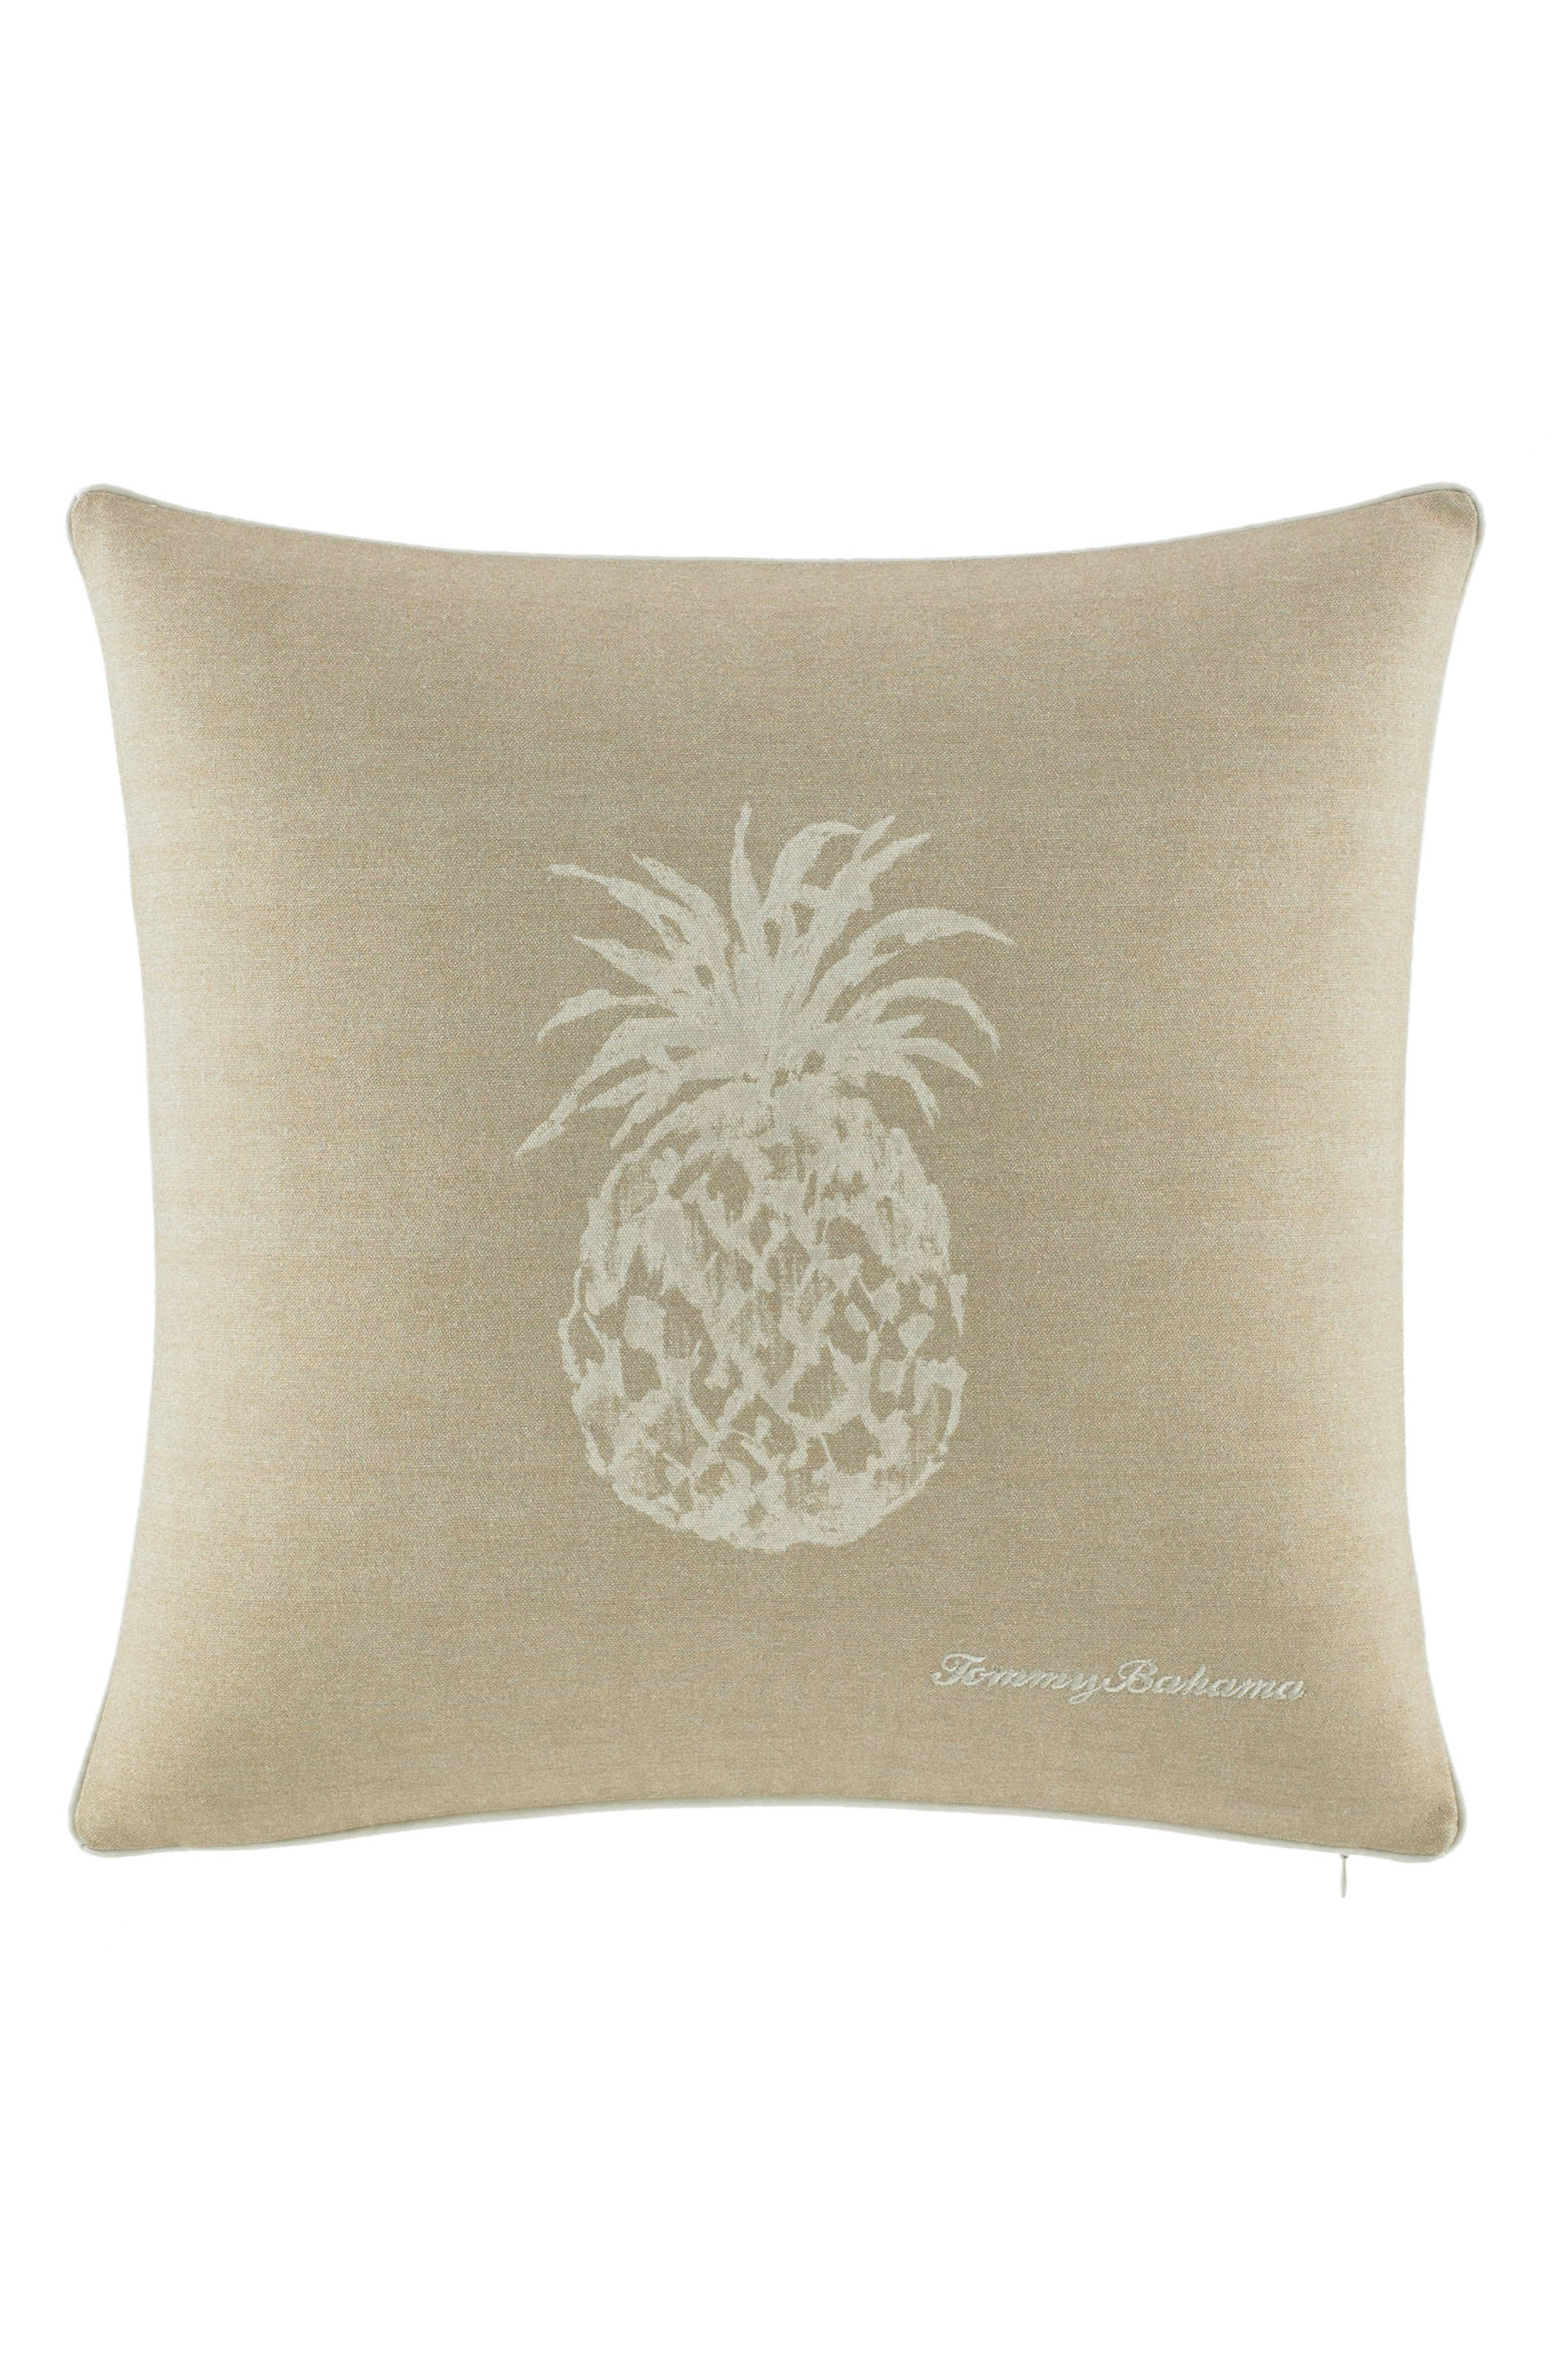 TOMMY BAHAMA Pineapple Canvas Accent Pillow, Main, color, 250